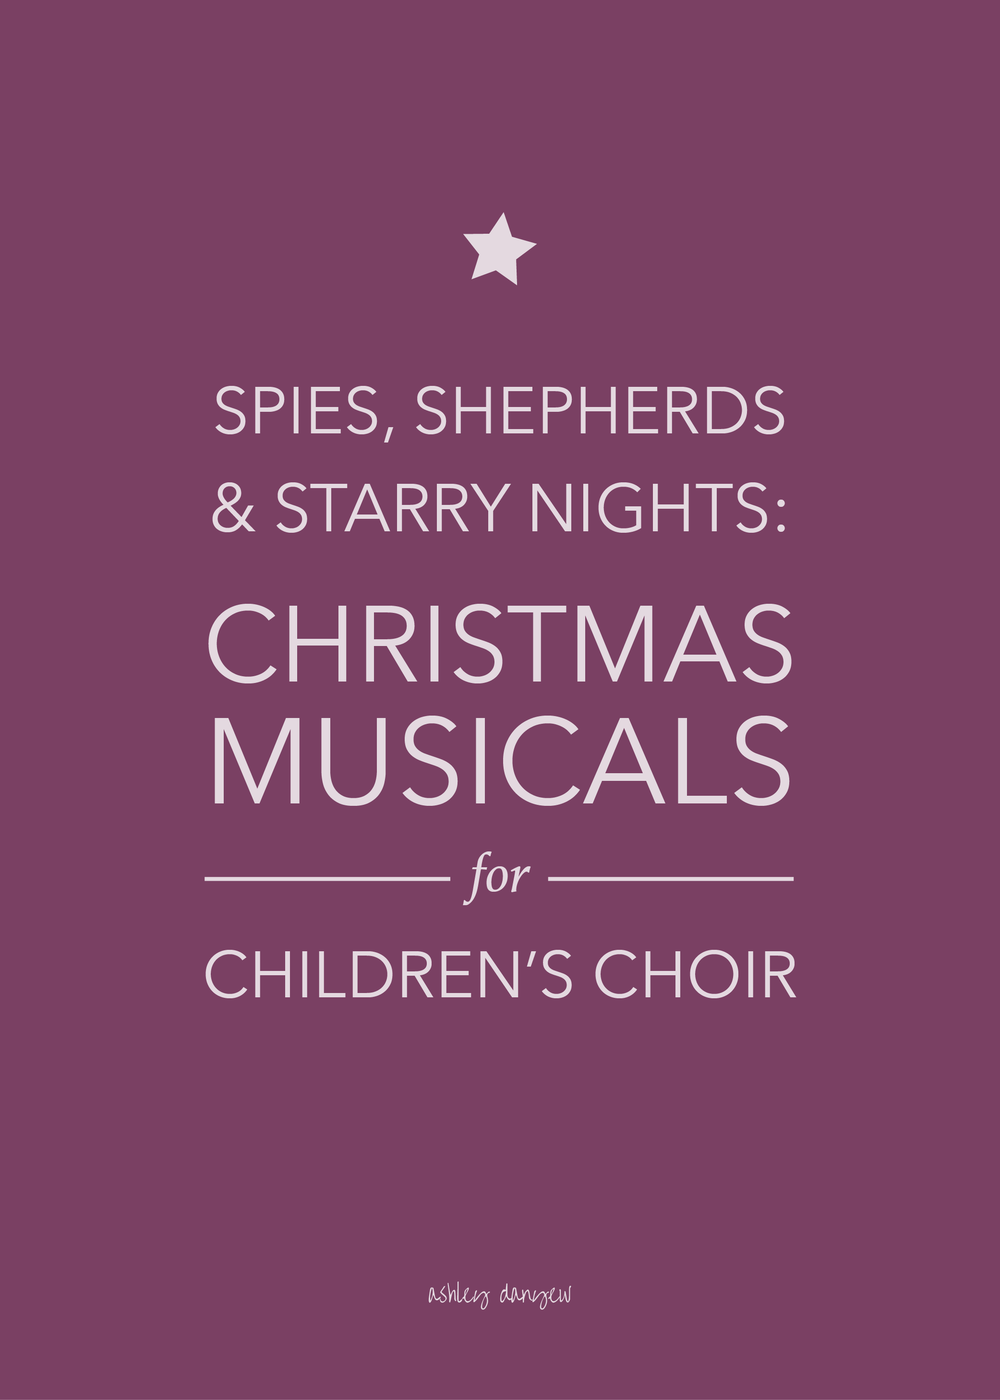 Christmas-Musicals-for-Childrens-Choir-01.png